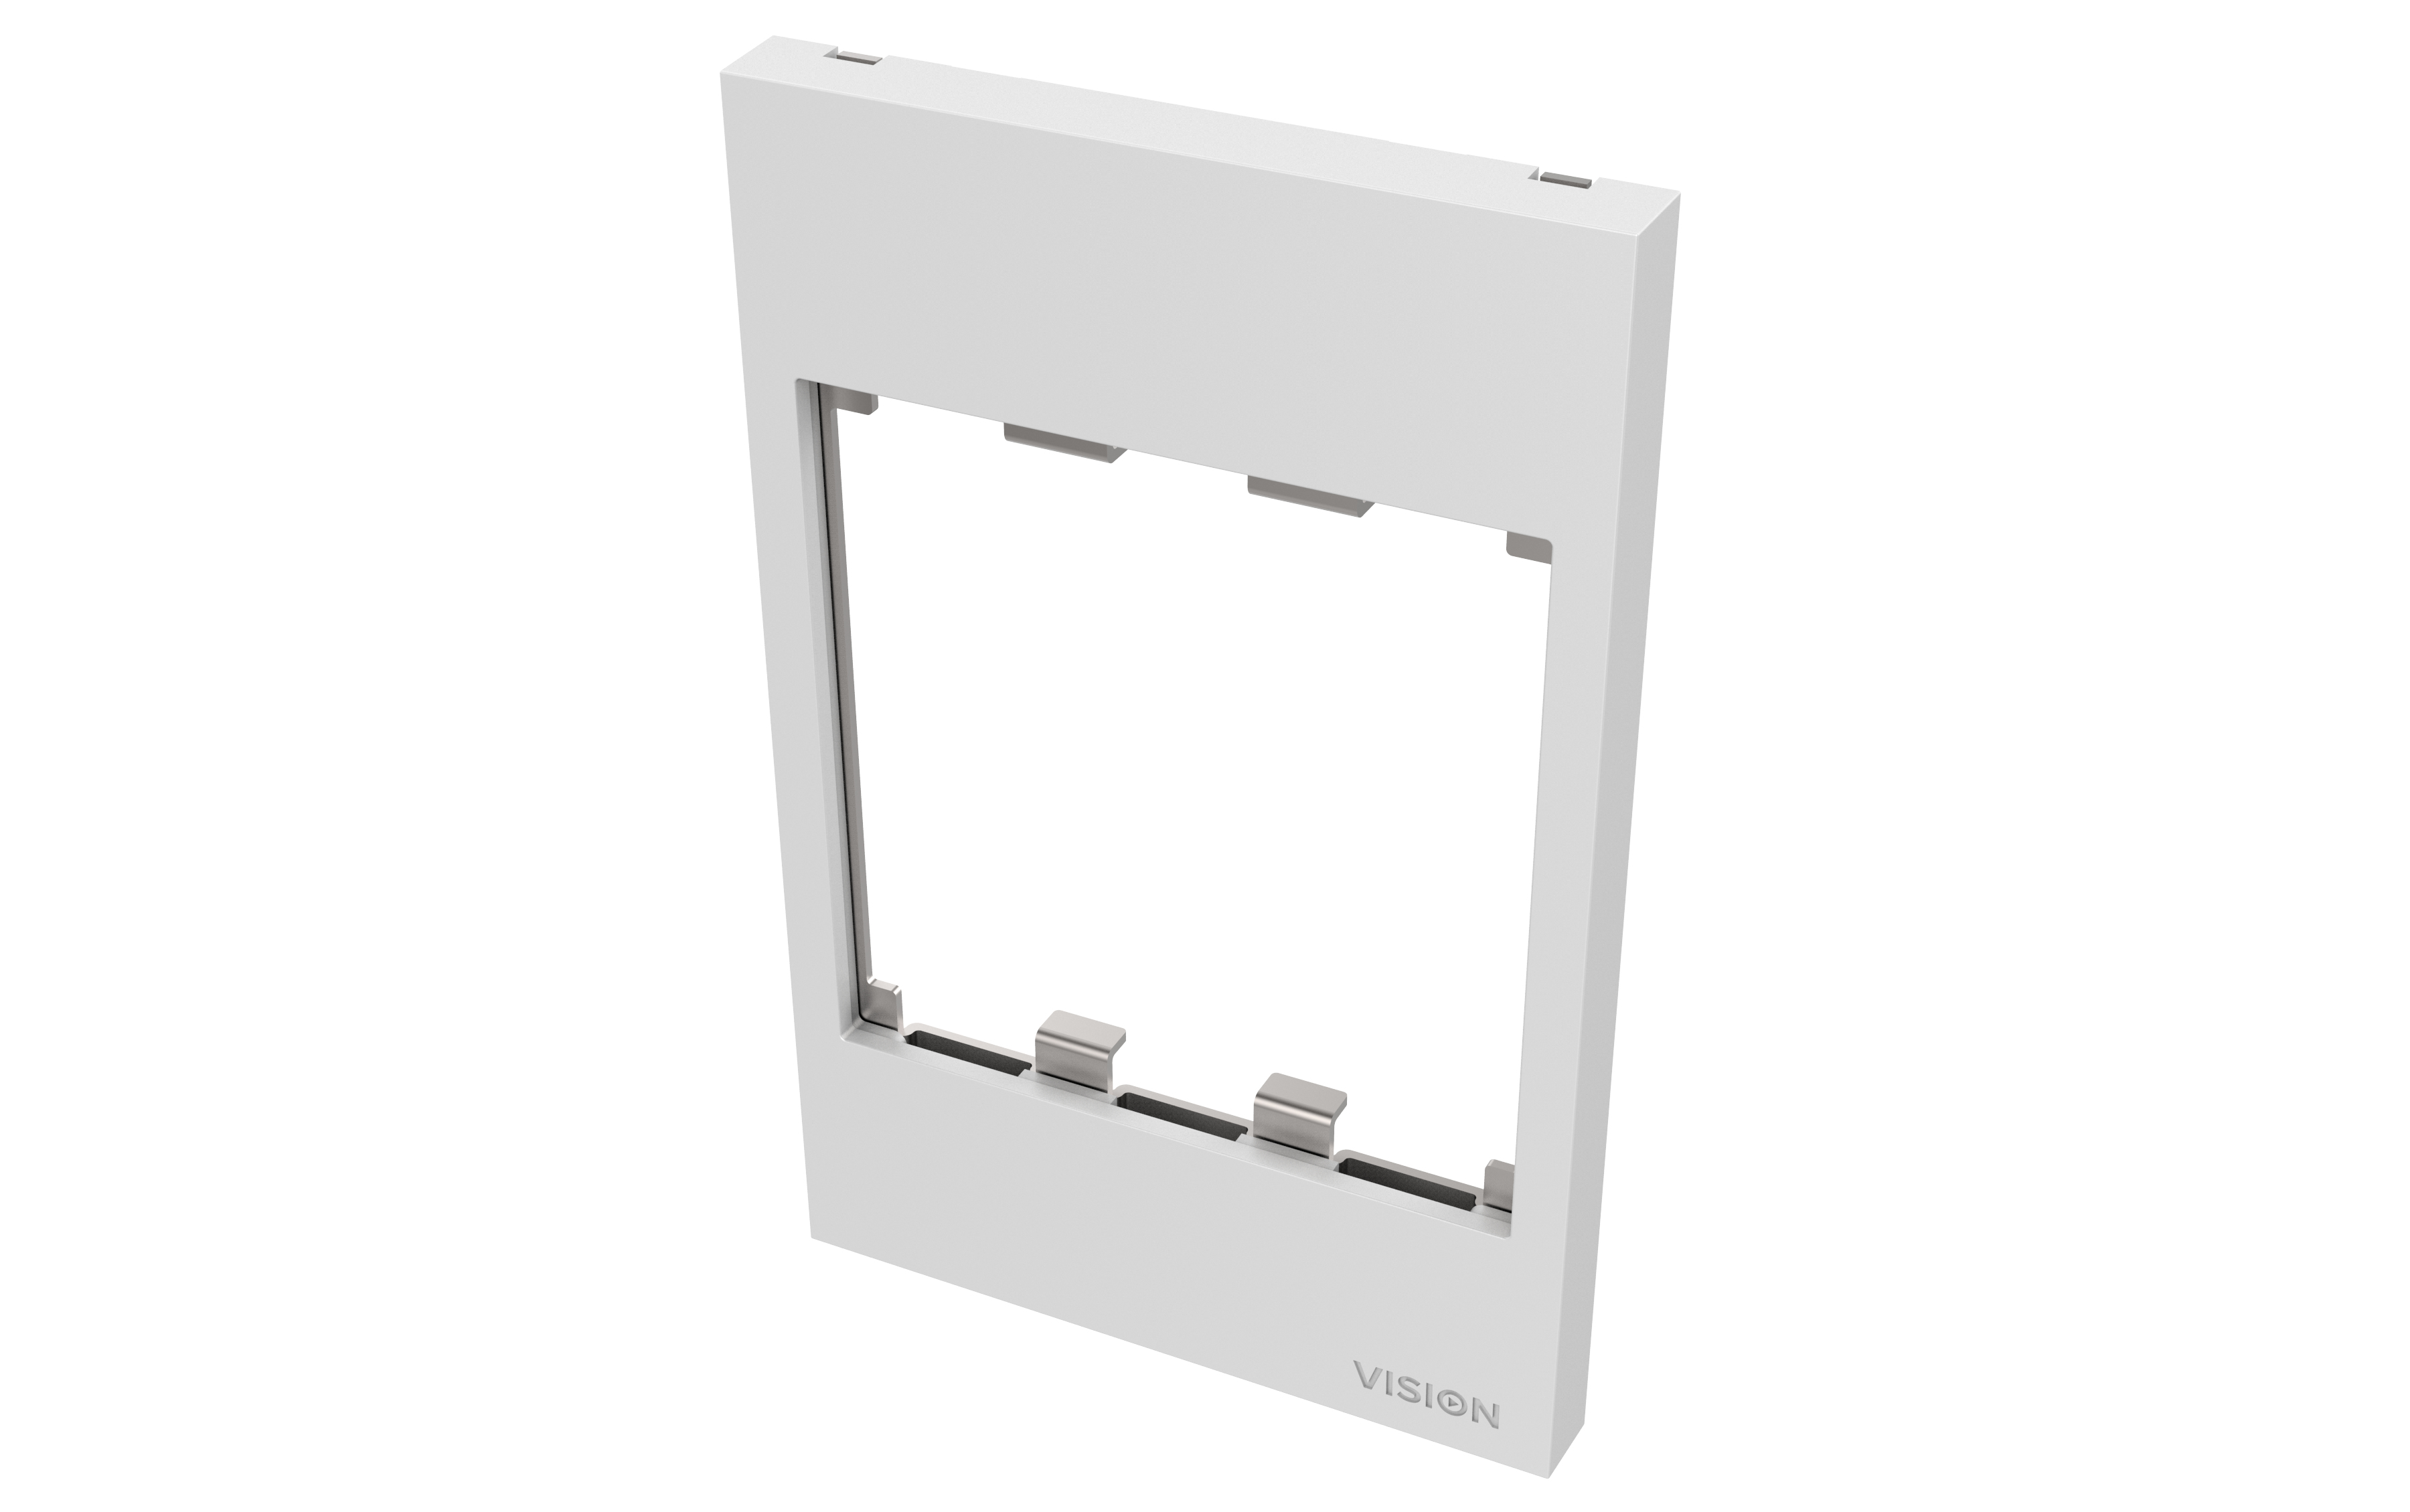 Vision TECHCONNECT V3 AUSTRALIAN 1-GANG SURROUND 1-gang frame which accommodates THREE modules. Fits to any